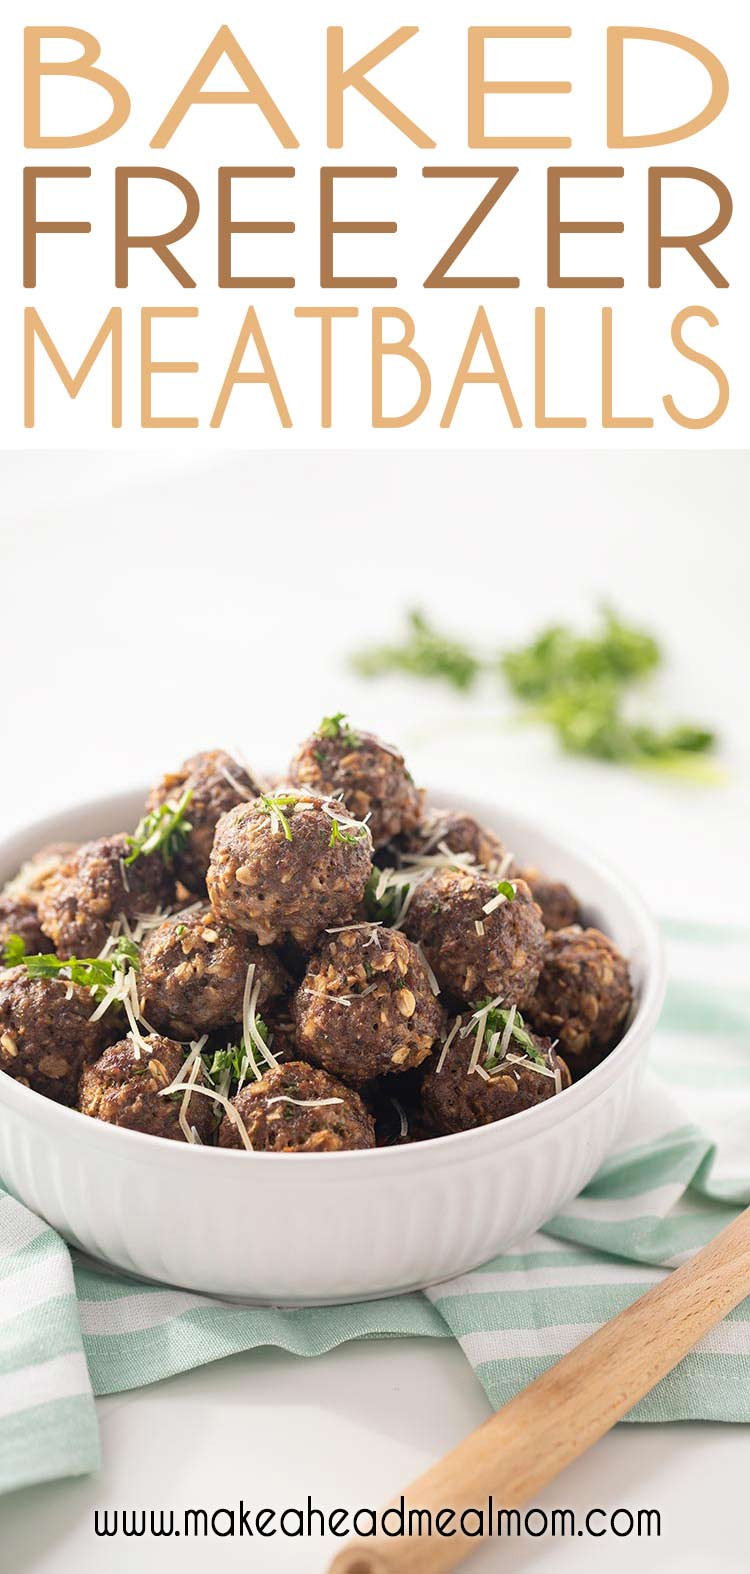 Easy Baked Freezer Meatballs stacked in white bowl and garnished with cheese and parsley